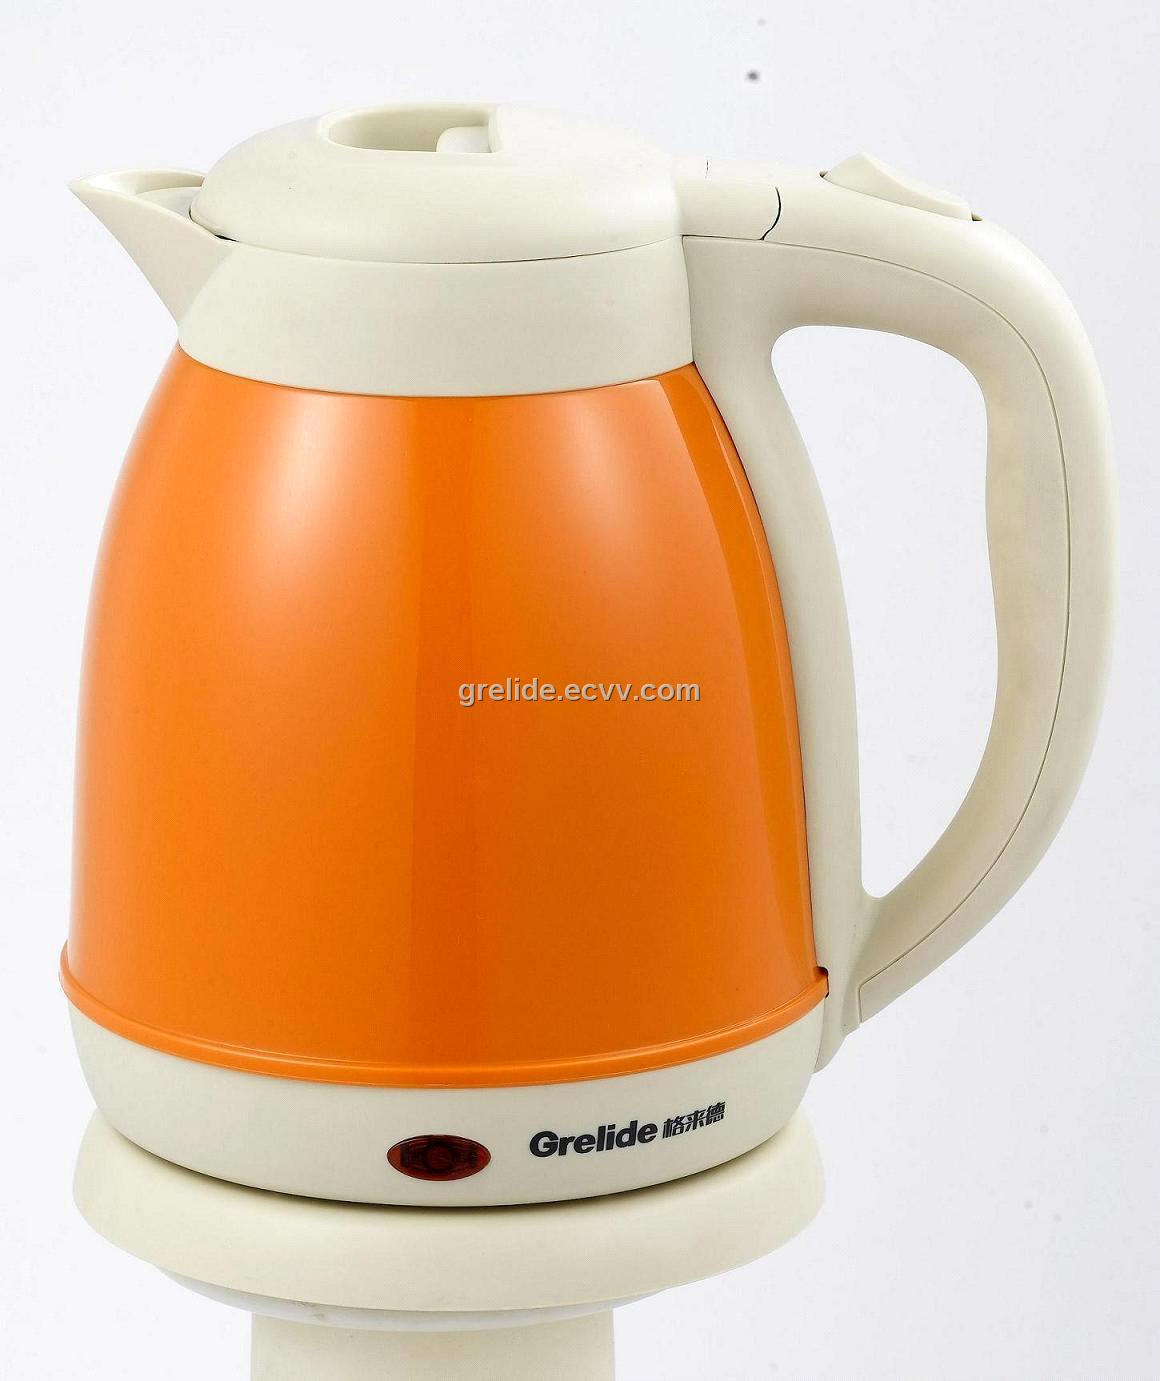 Electric Kettle Product ~ Electric kettle purchasing souring agent ecvv